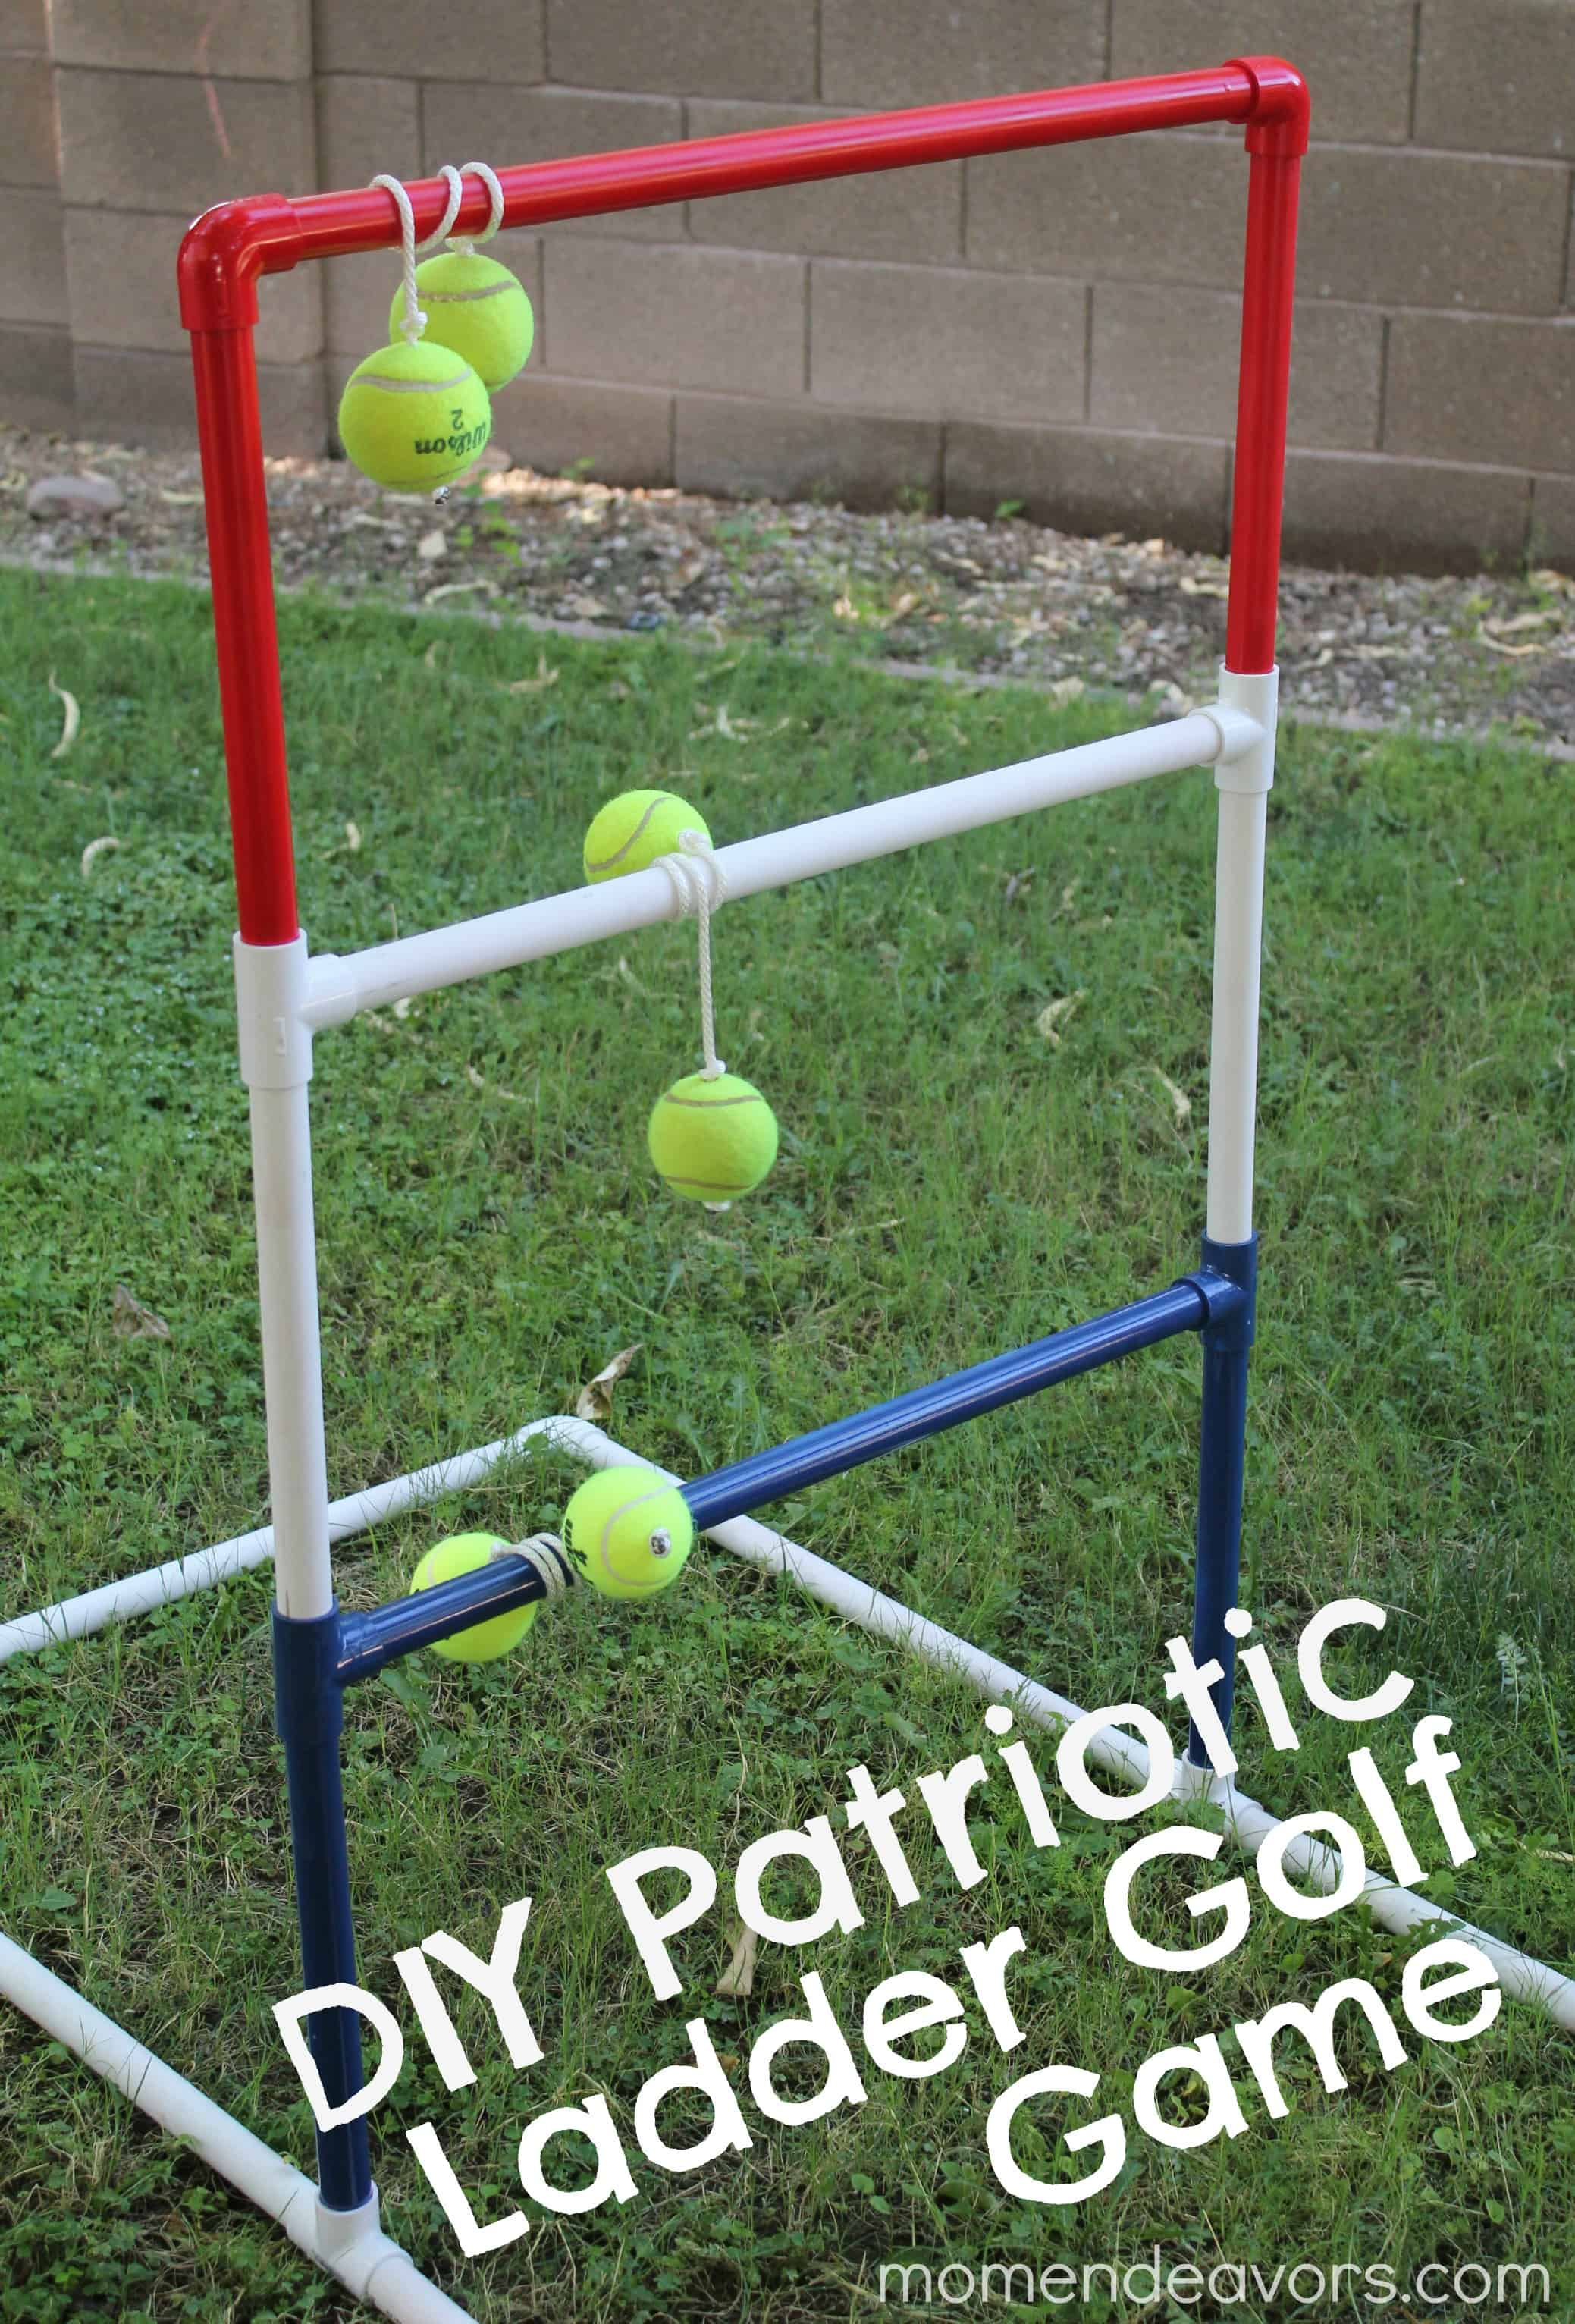 Pvc pipe and tennis ball golf game